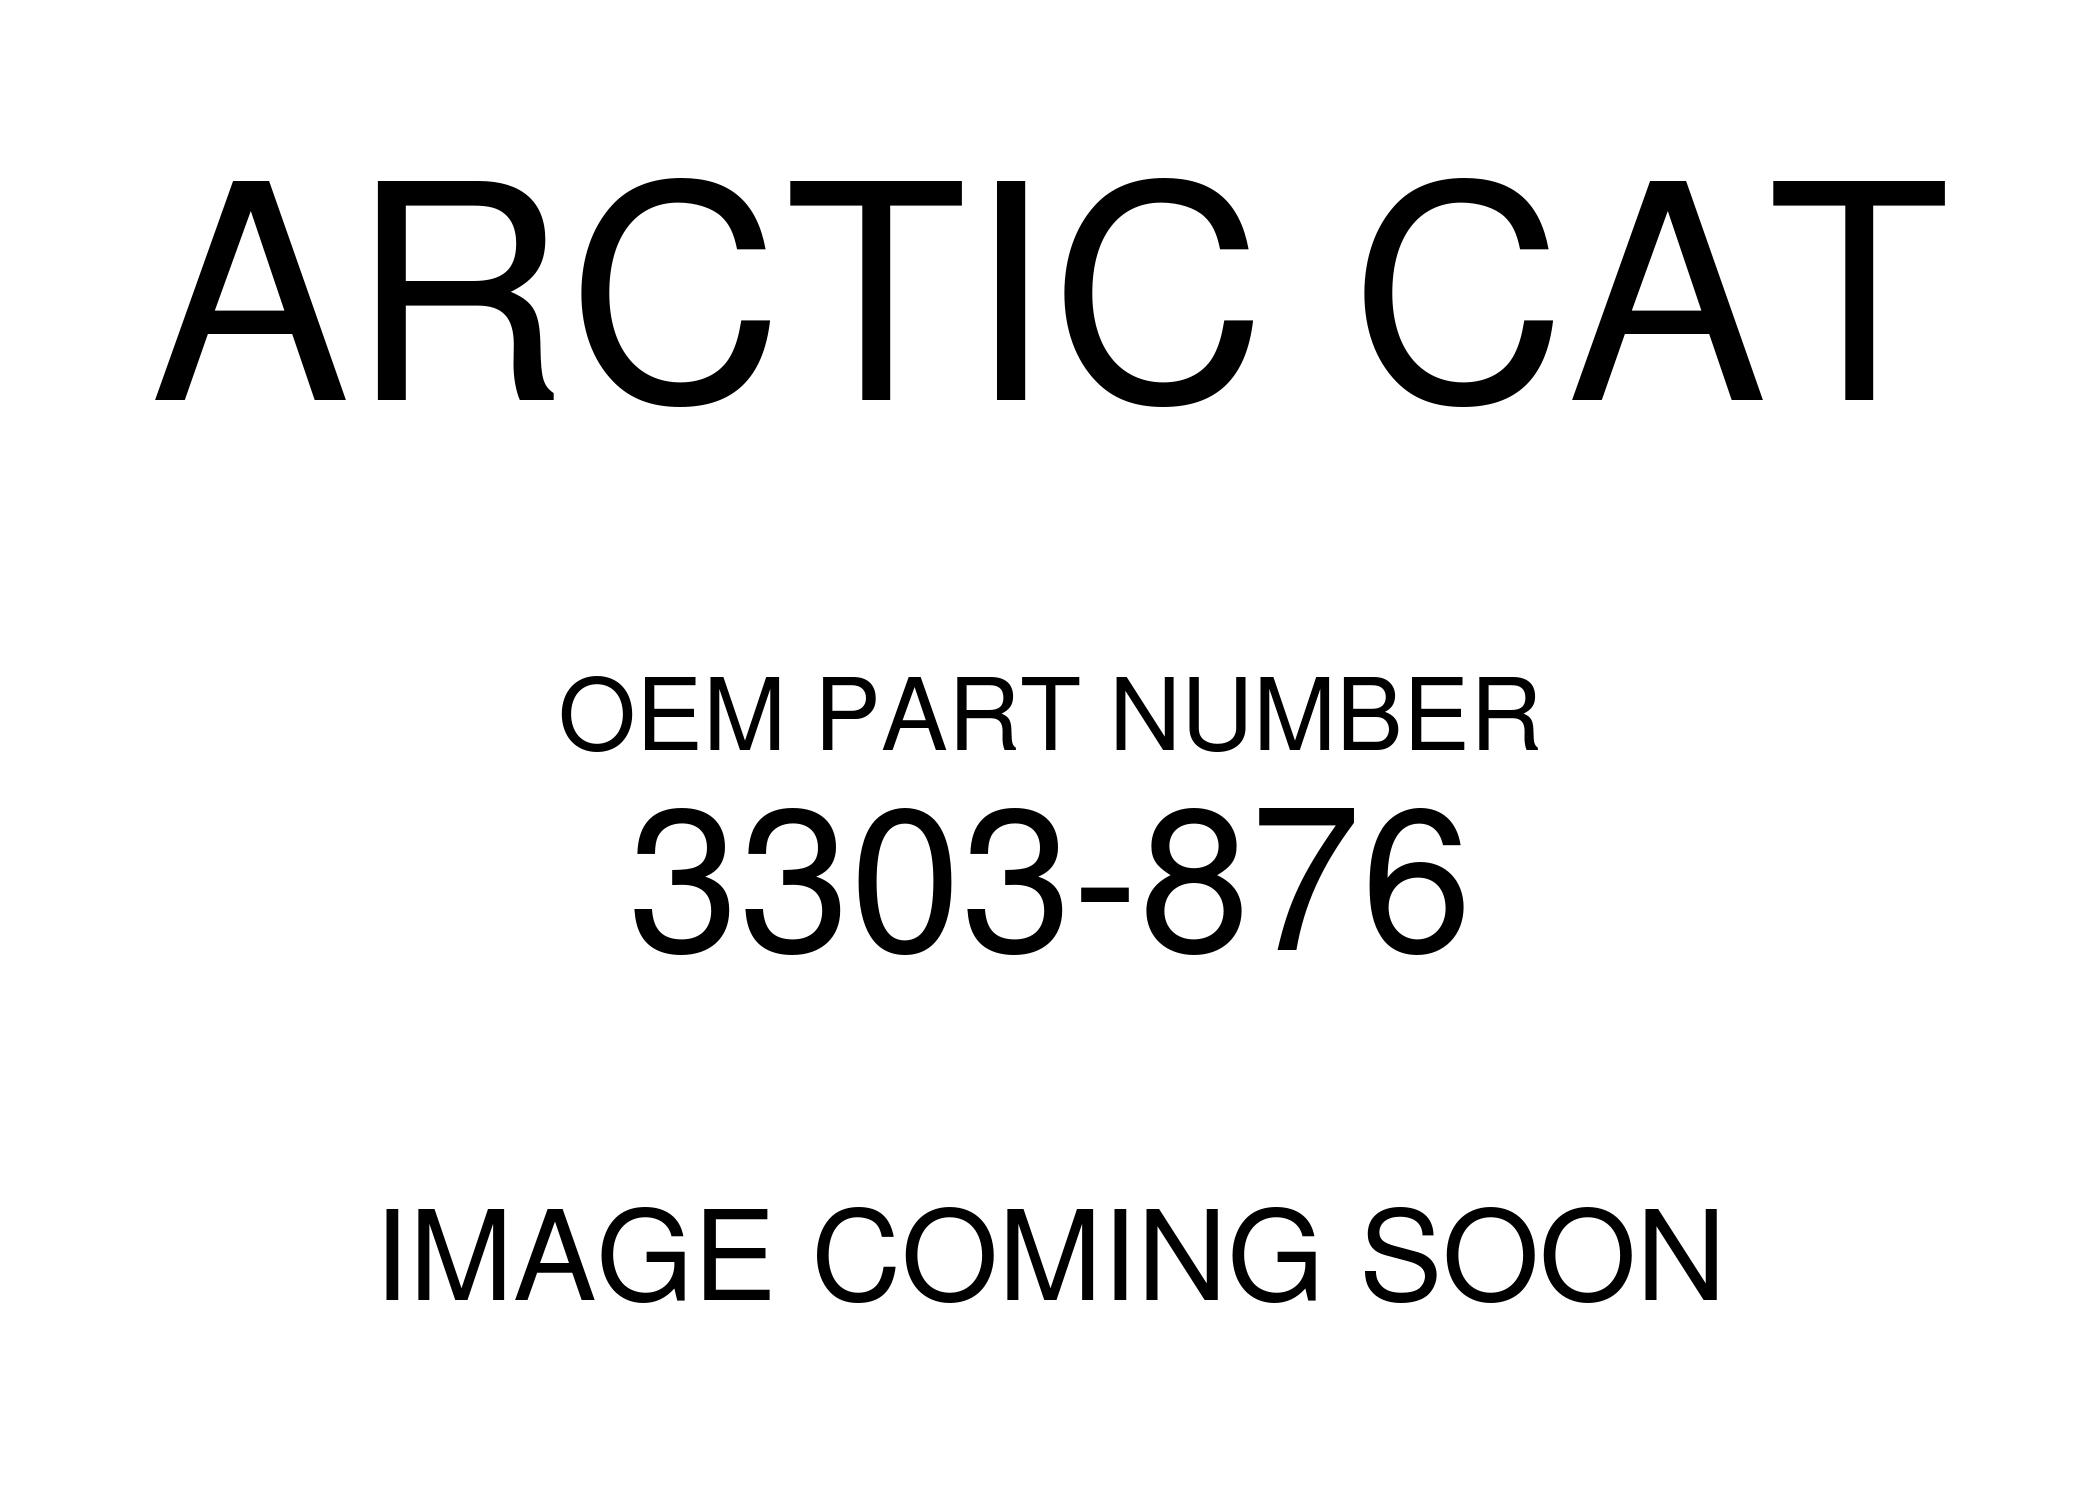 2007 ARCTIC CAT 250 DVX UTILITY ATV SERVICE REPAIR